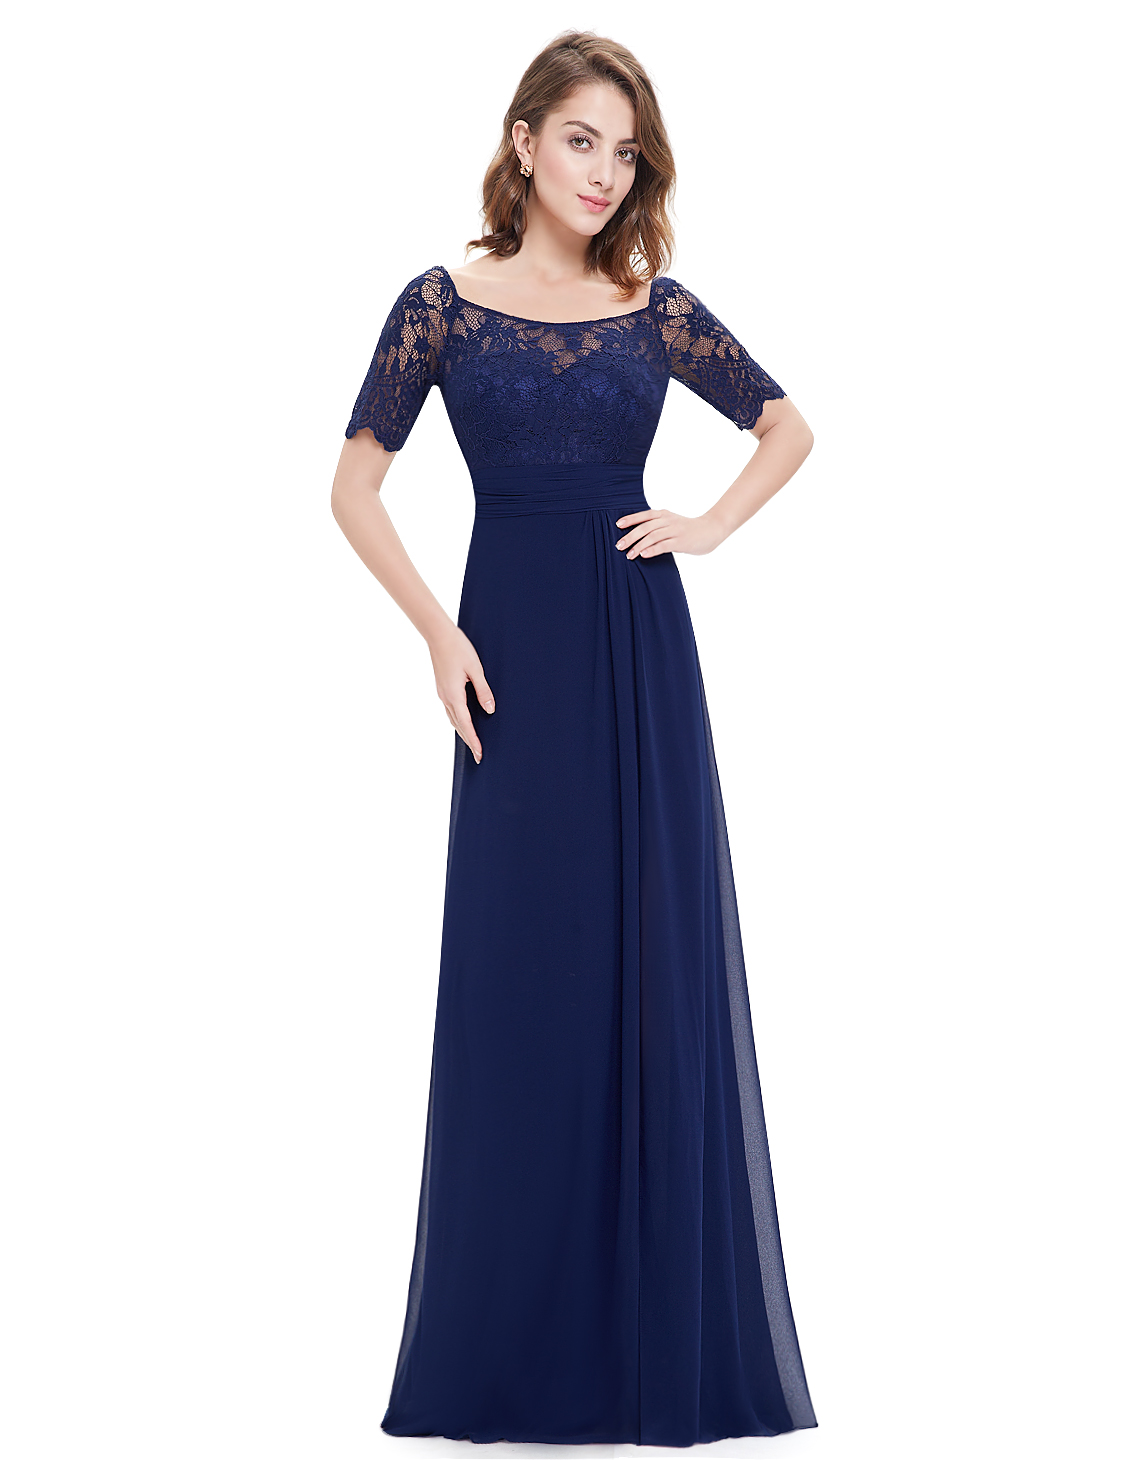 256070ee2da1 Ever-pretty Long Short Lace Sleeve Navy Blue Formal Evening Party ...